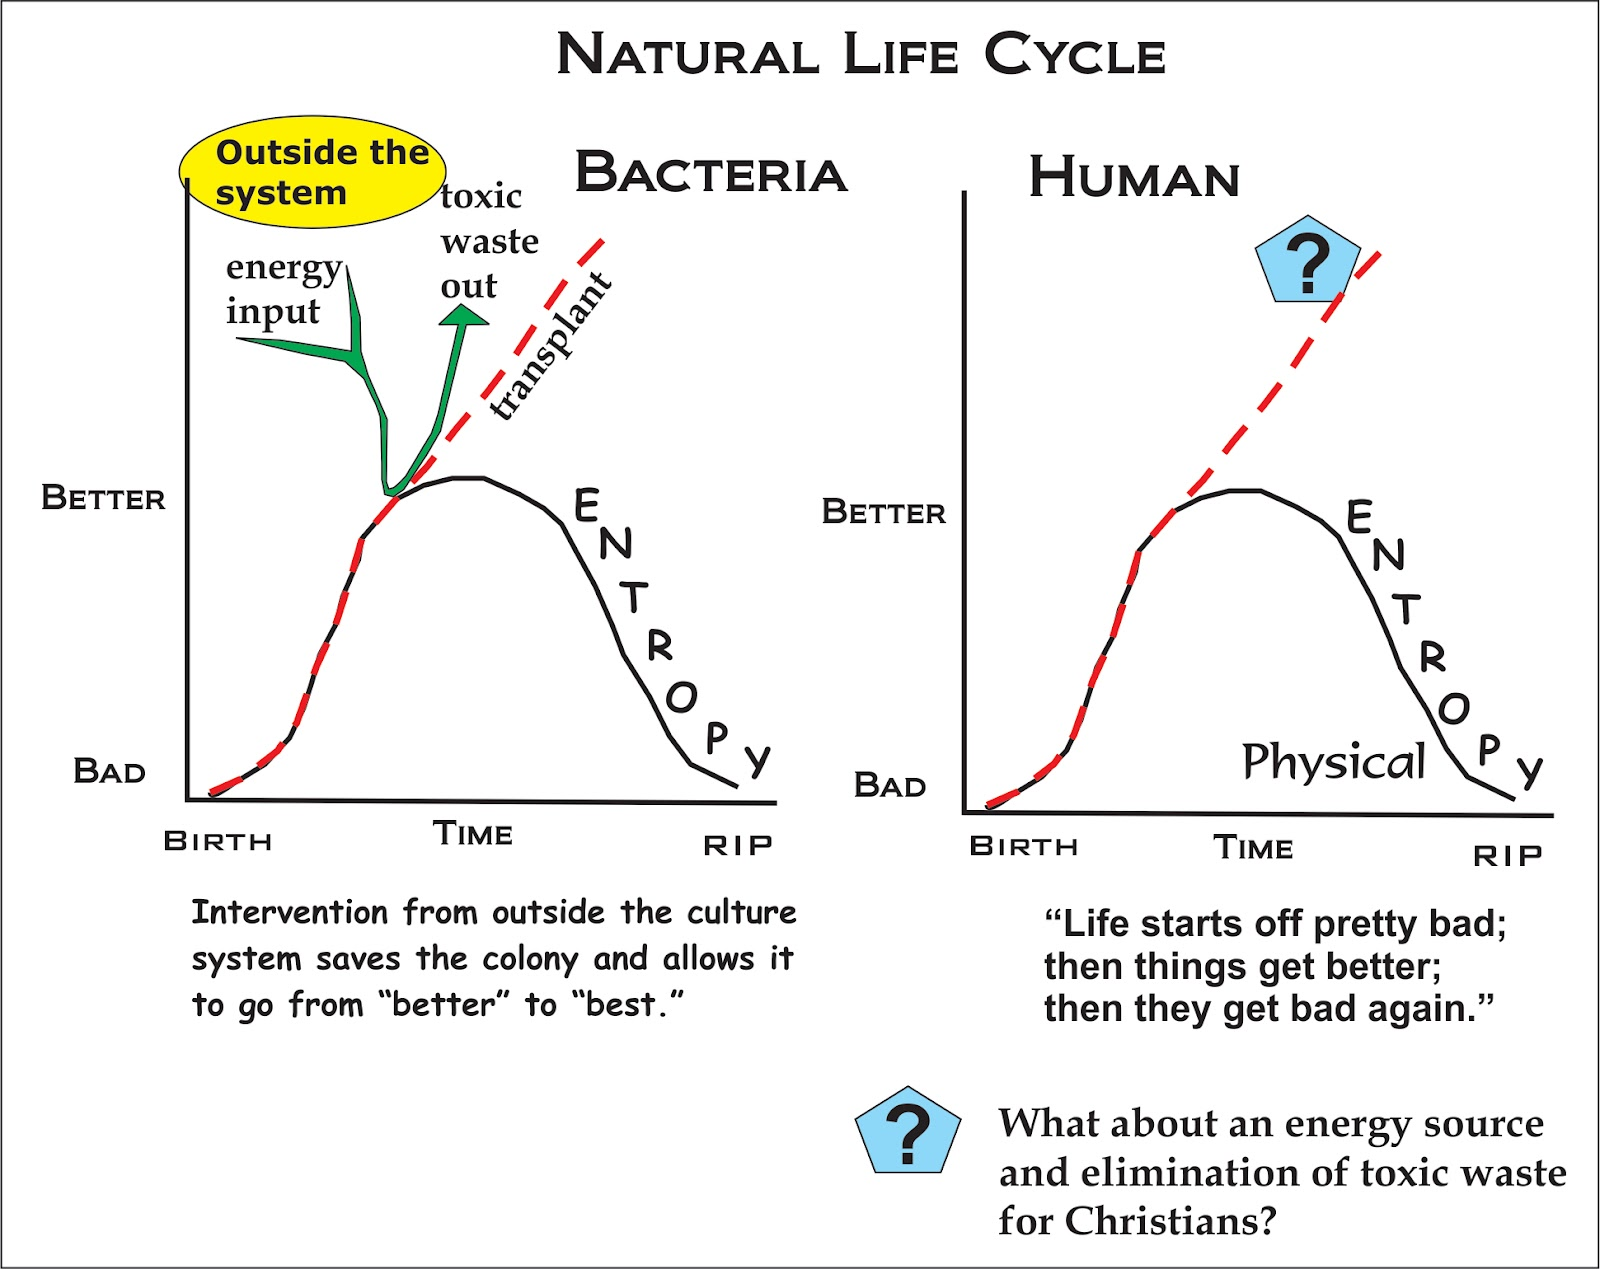 Life cycle of a human